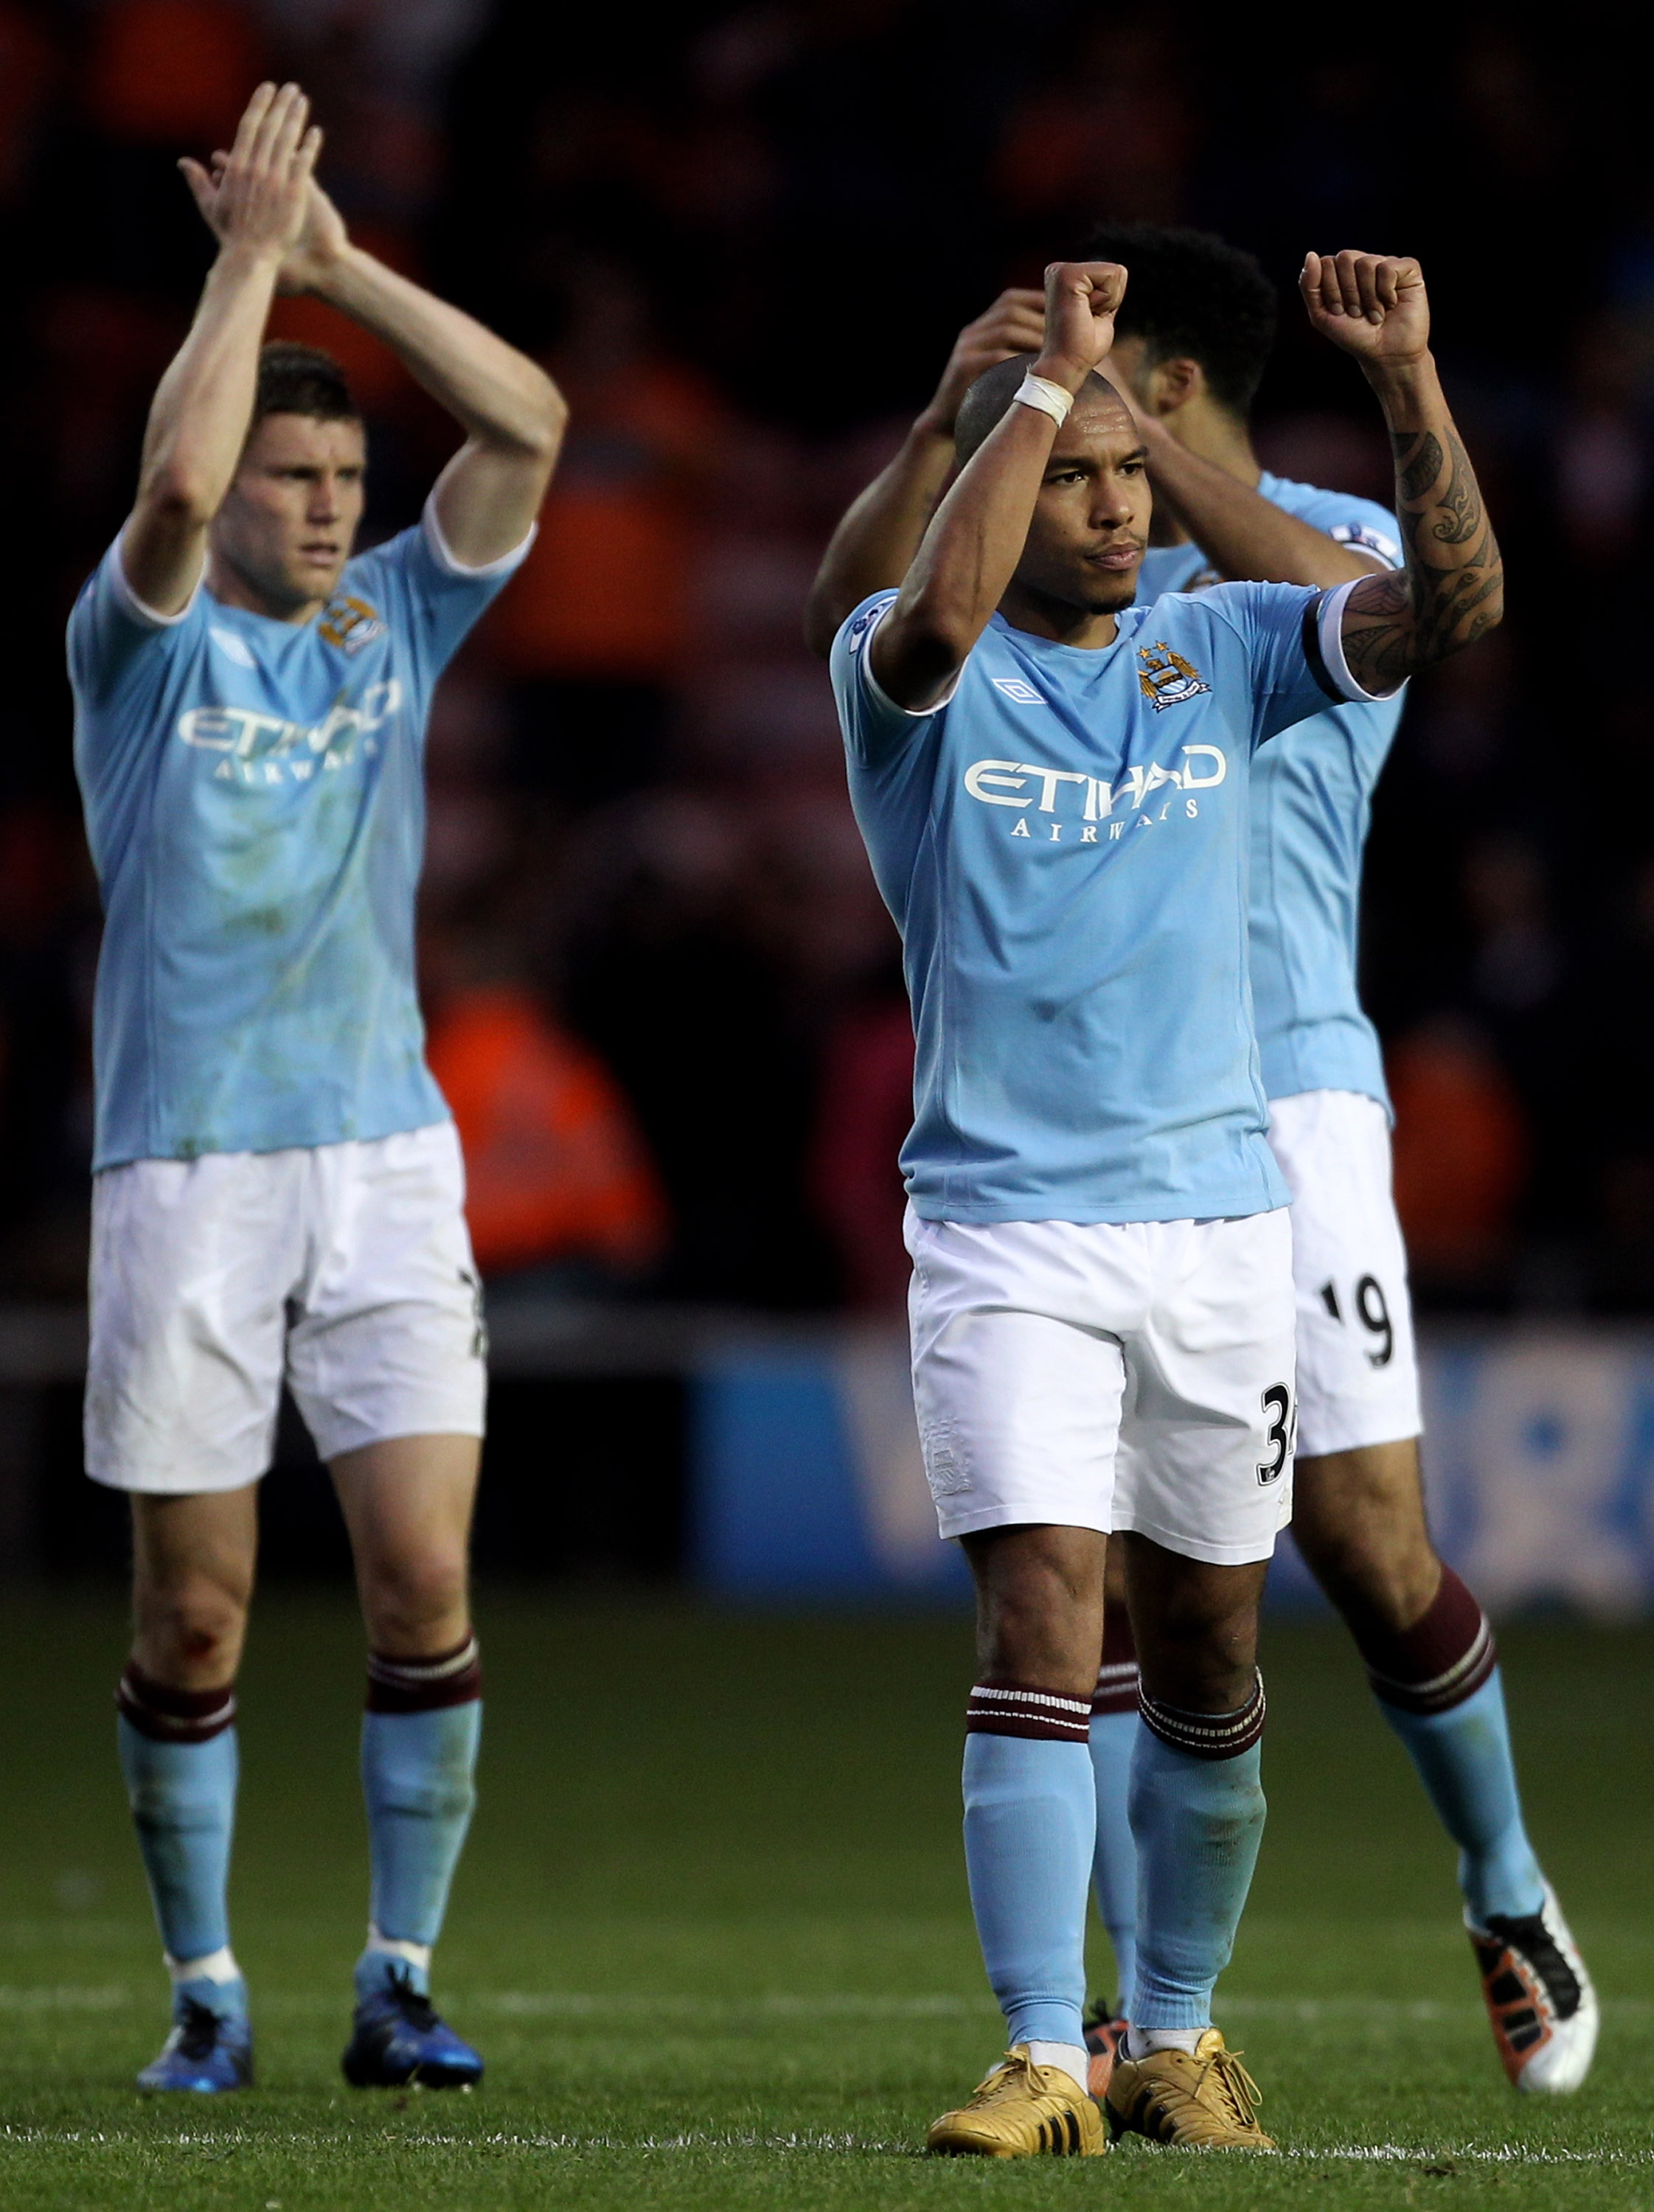 BLACKPOOL, ENGLAND - OCTOBER 17:   Nigel de Jong of Manchester City acknowledges the fans at the end of the Barclays Premiership match between Blackpool and Manchester City at Bloomfield Road on October 17, 2010 in Blackpool, England. (Photo by Alex Lives